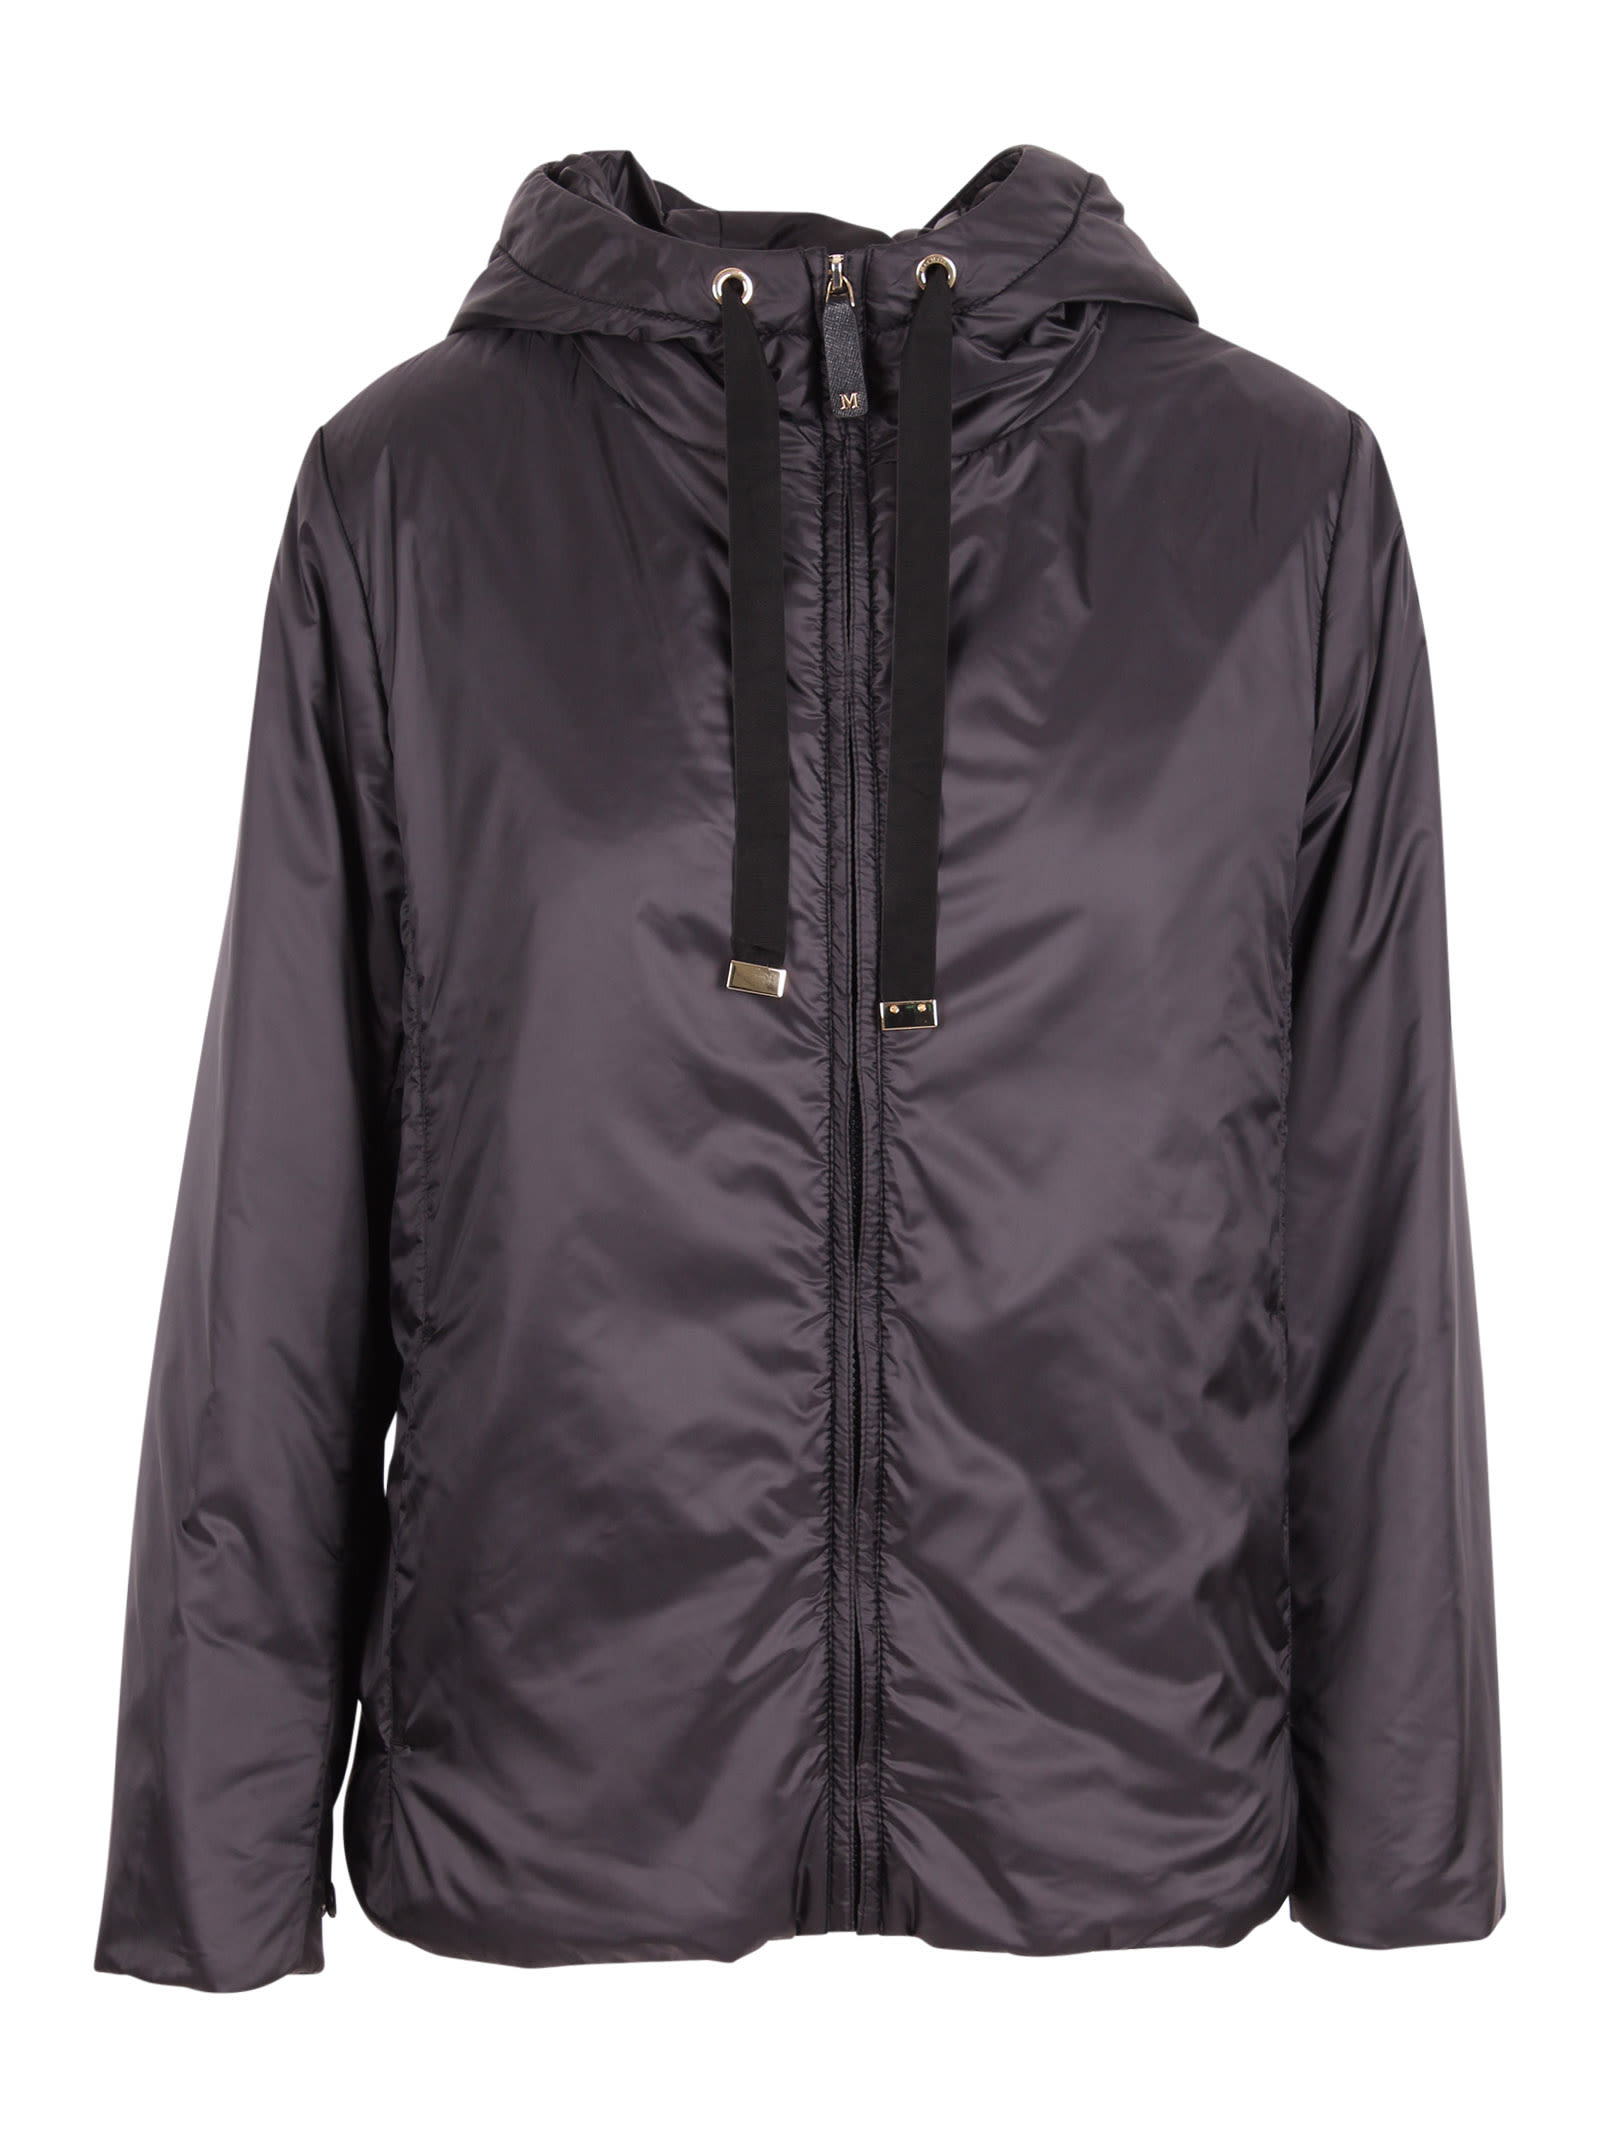 greenh Technical Fabric Jacket